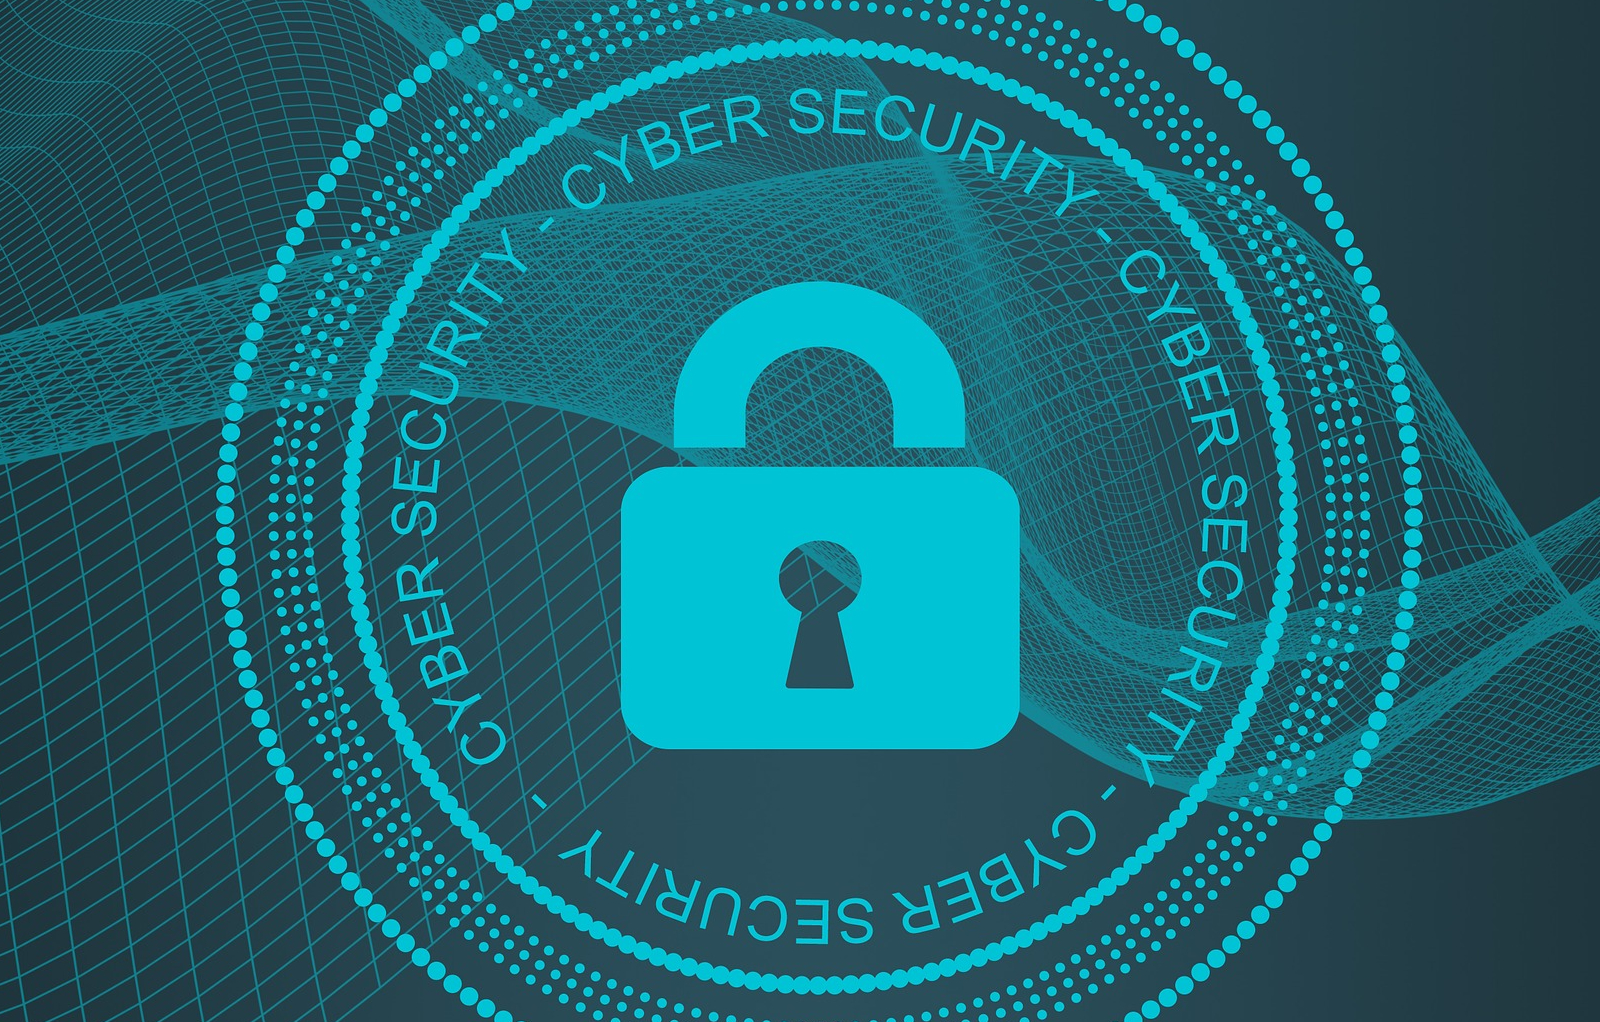 Cyber security online tips